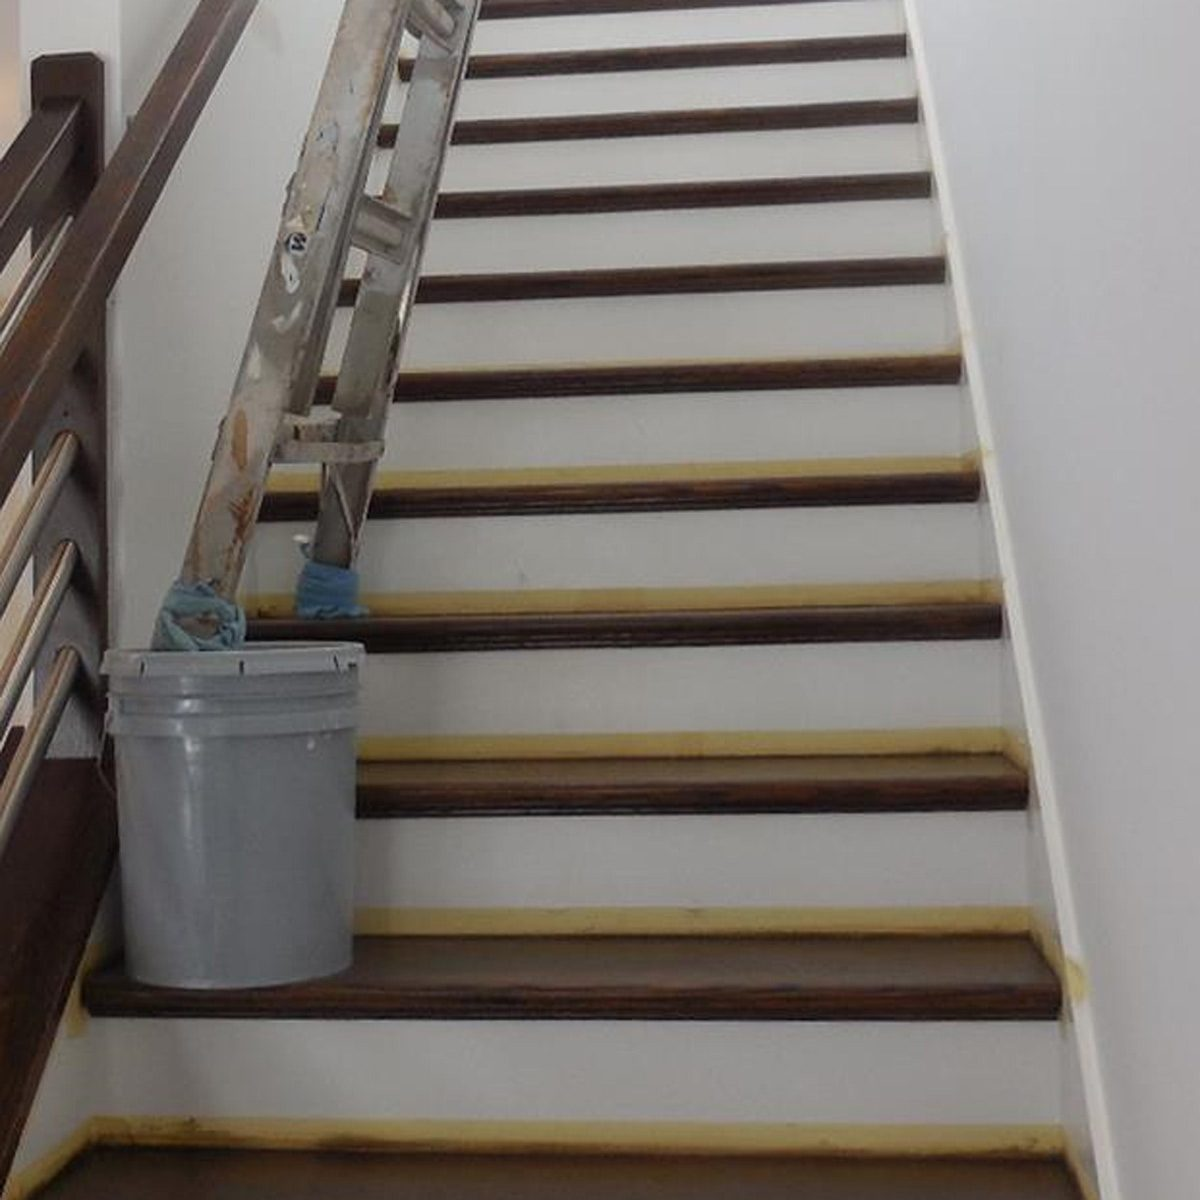 Brilliant extension ladder leg extender